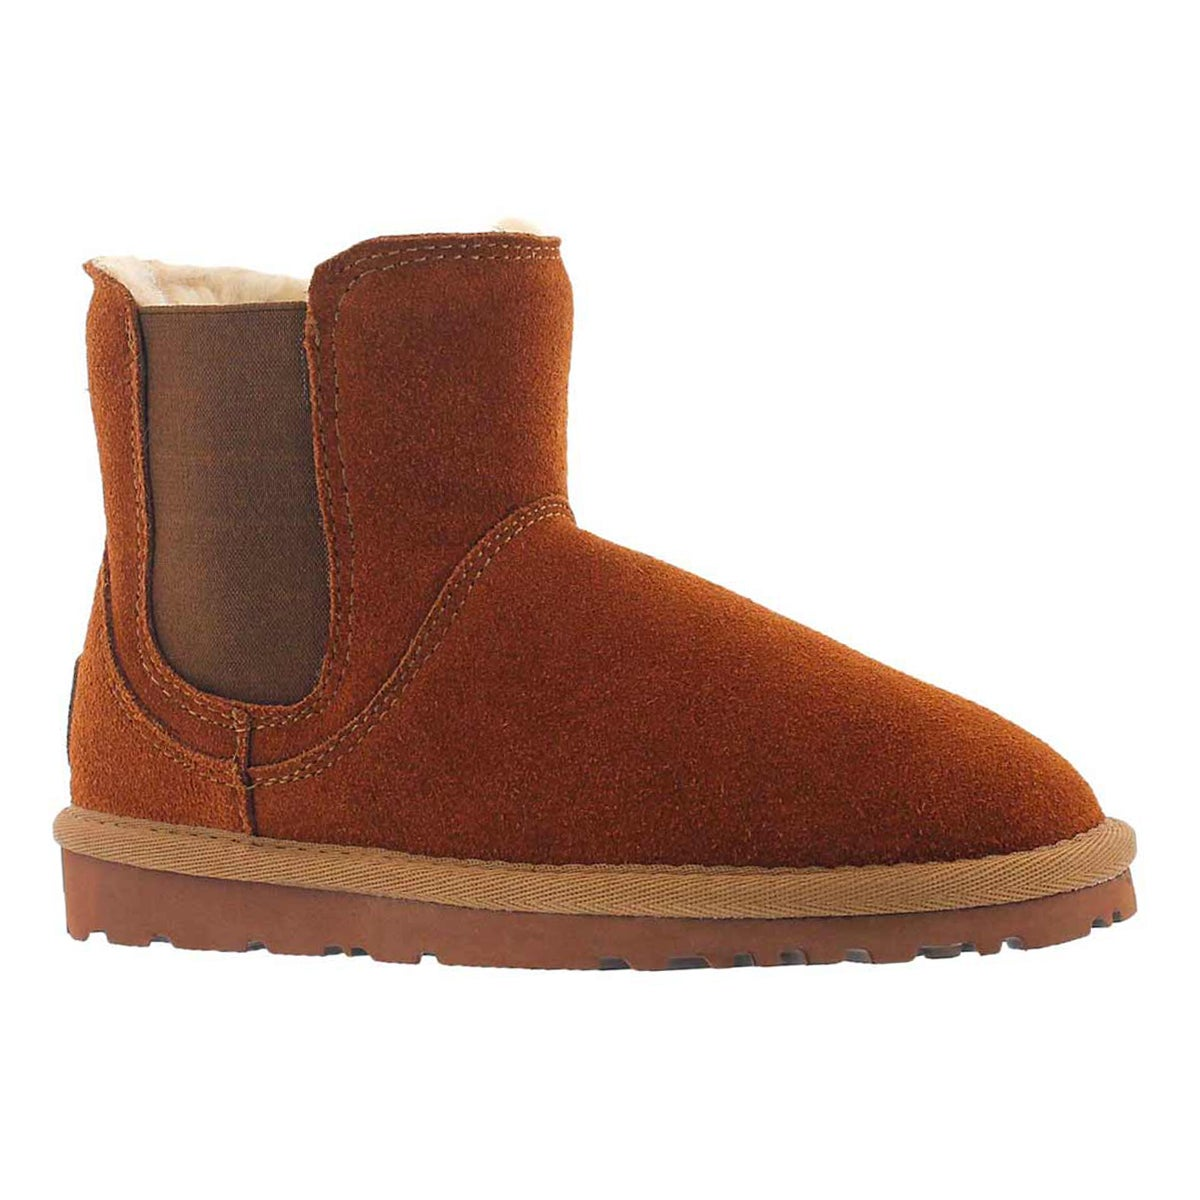 Girls' SMOCS 5 spice chelsea suede boots